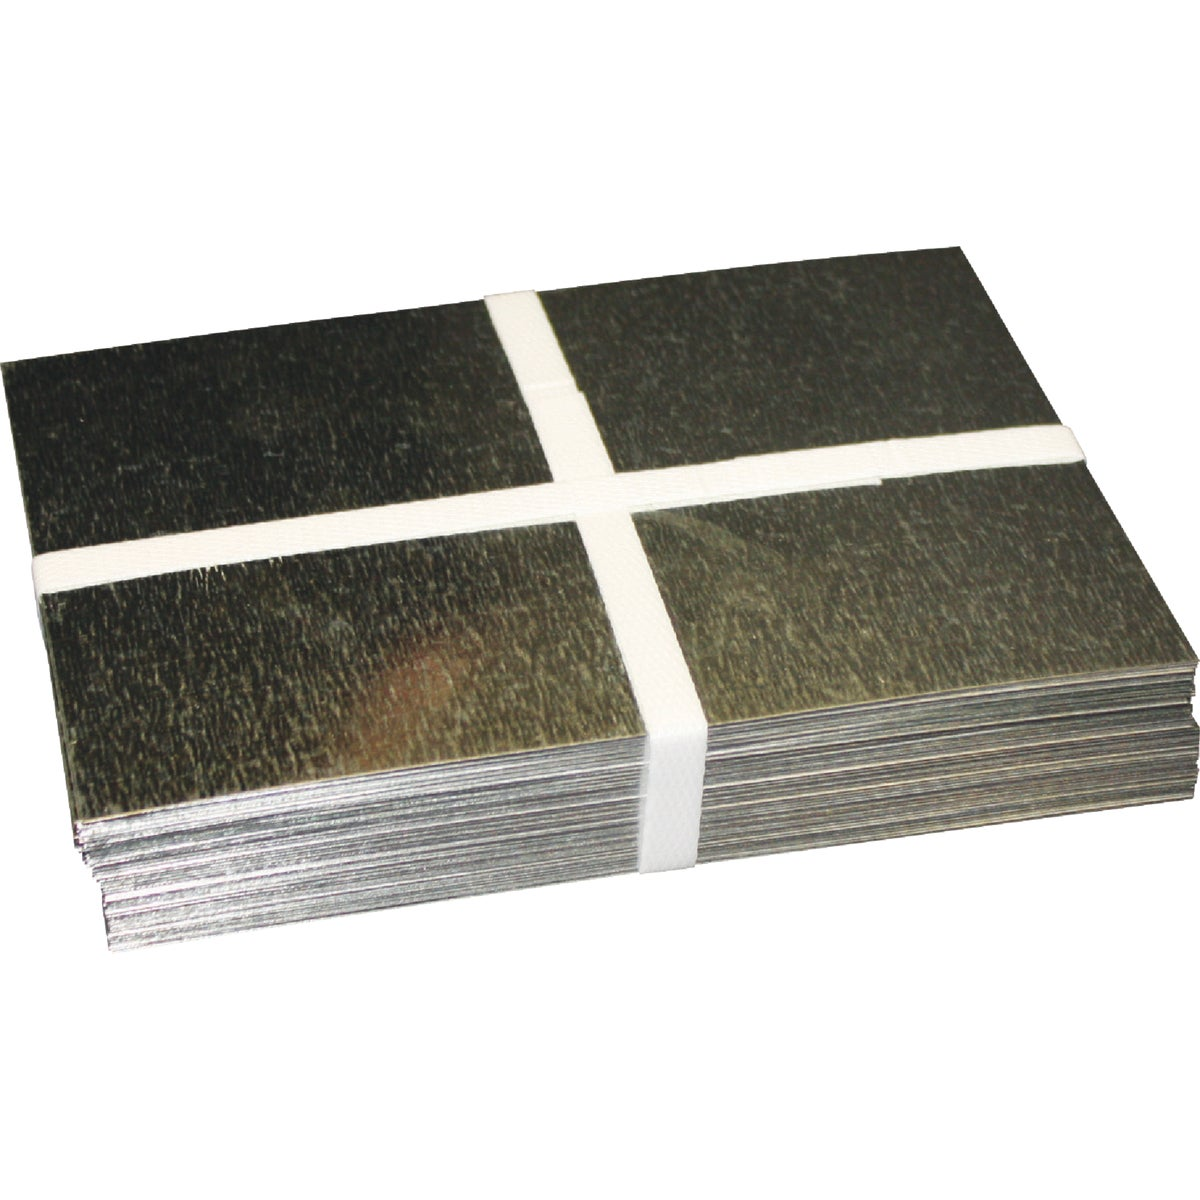 "5""X7""GLV FLSHING SHINGLE - 31410-GV10 by Klauer Mfg Co"